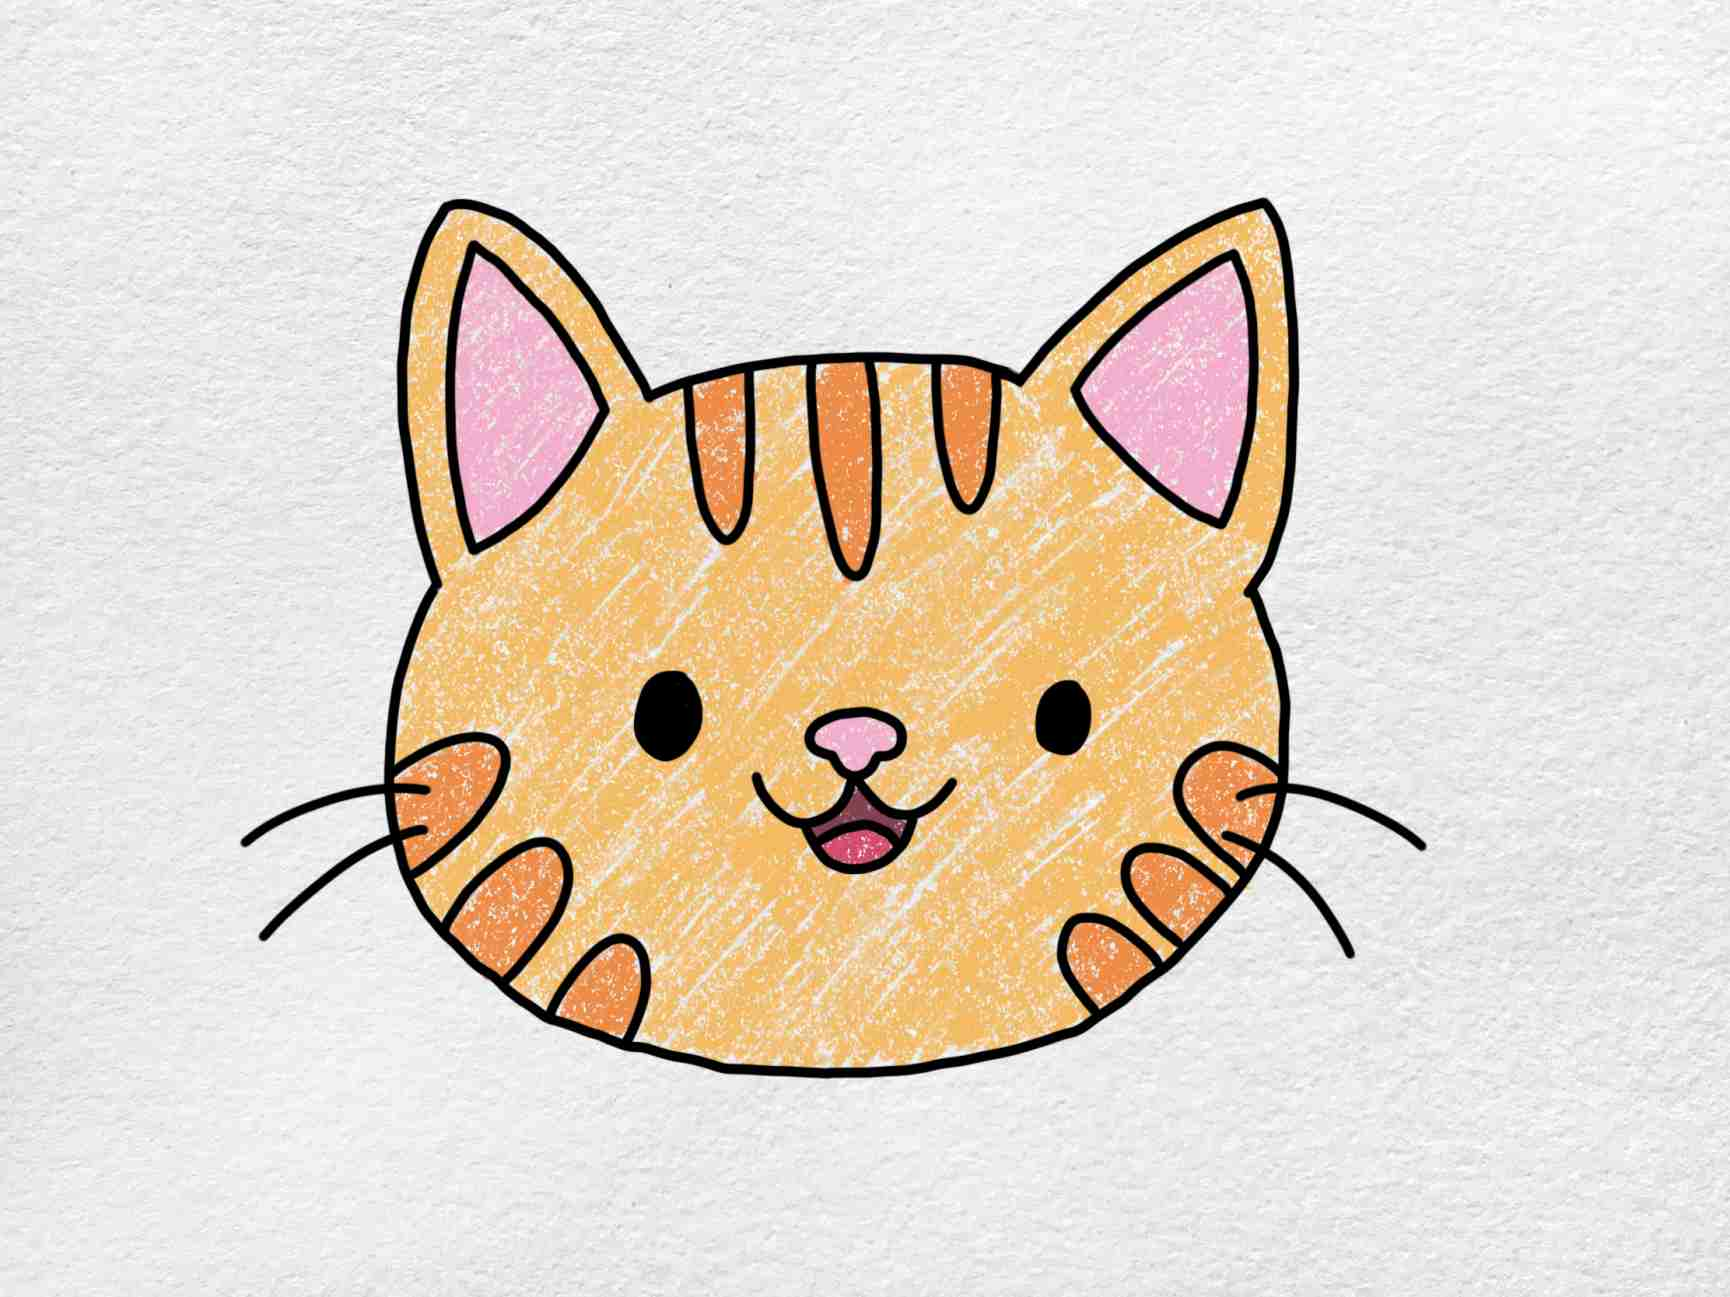 Easy Cat Face Drawing: Step 6